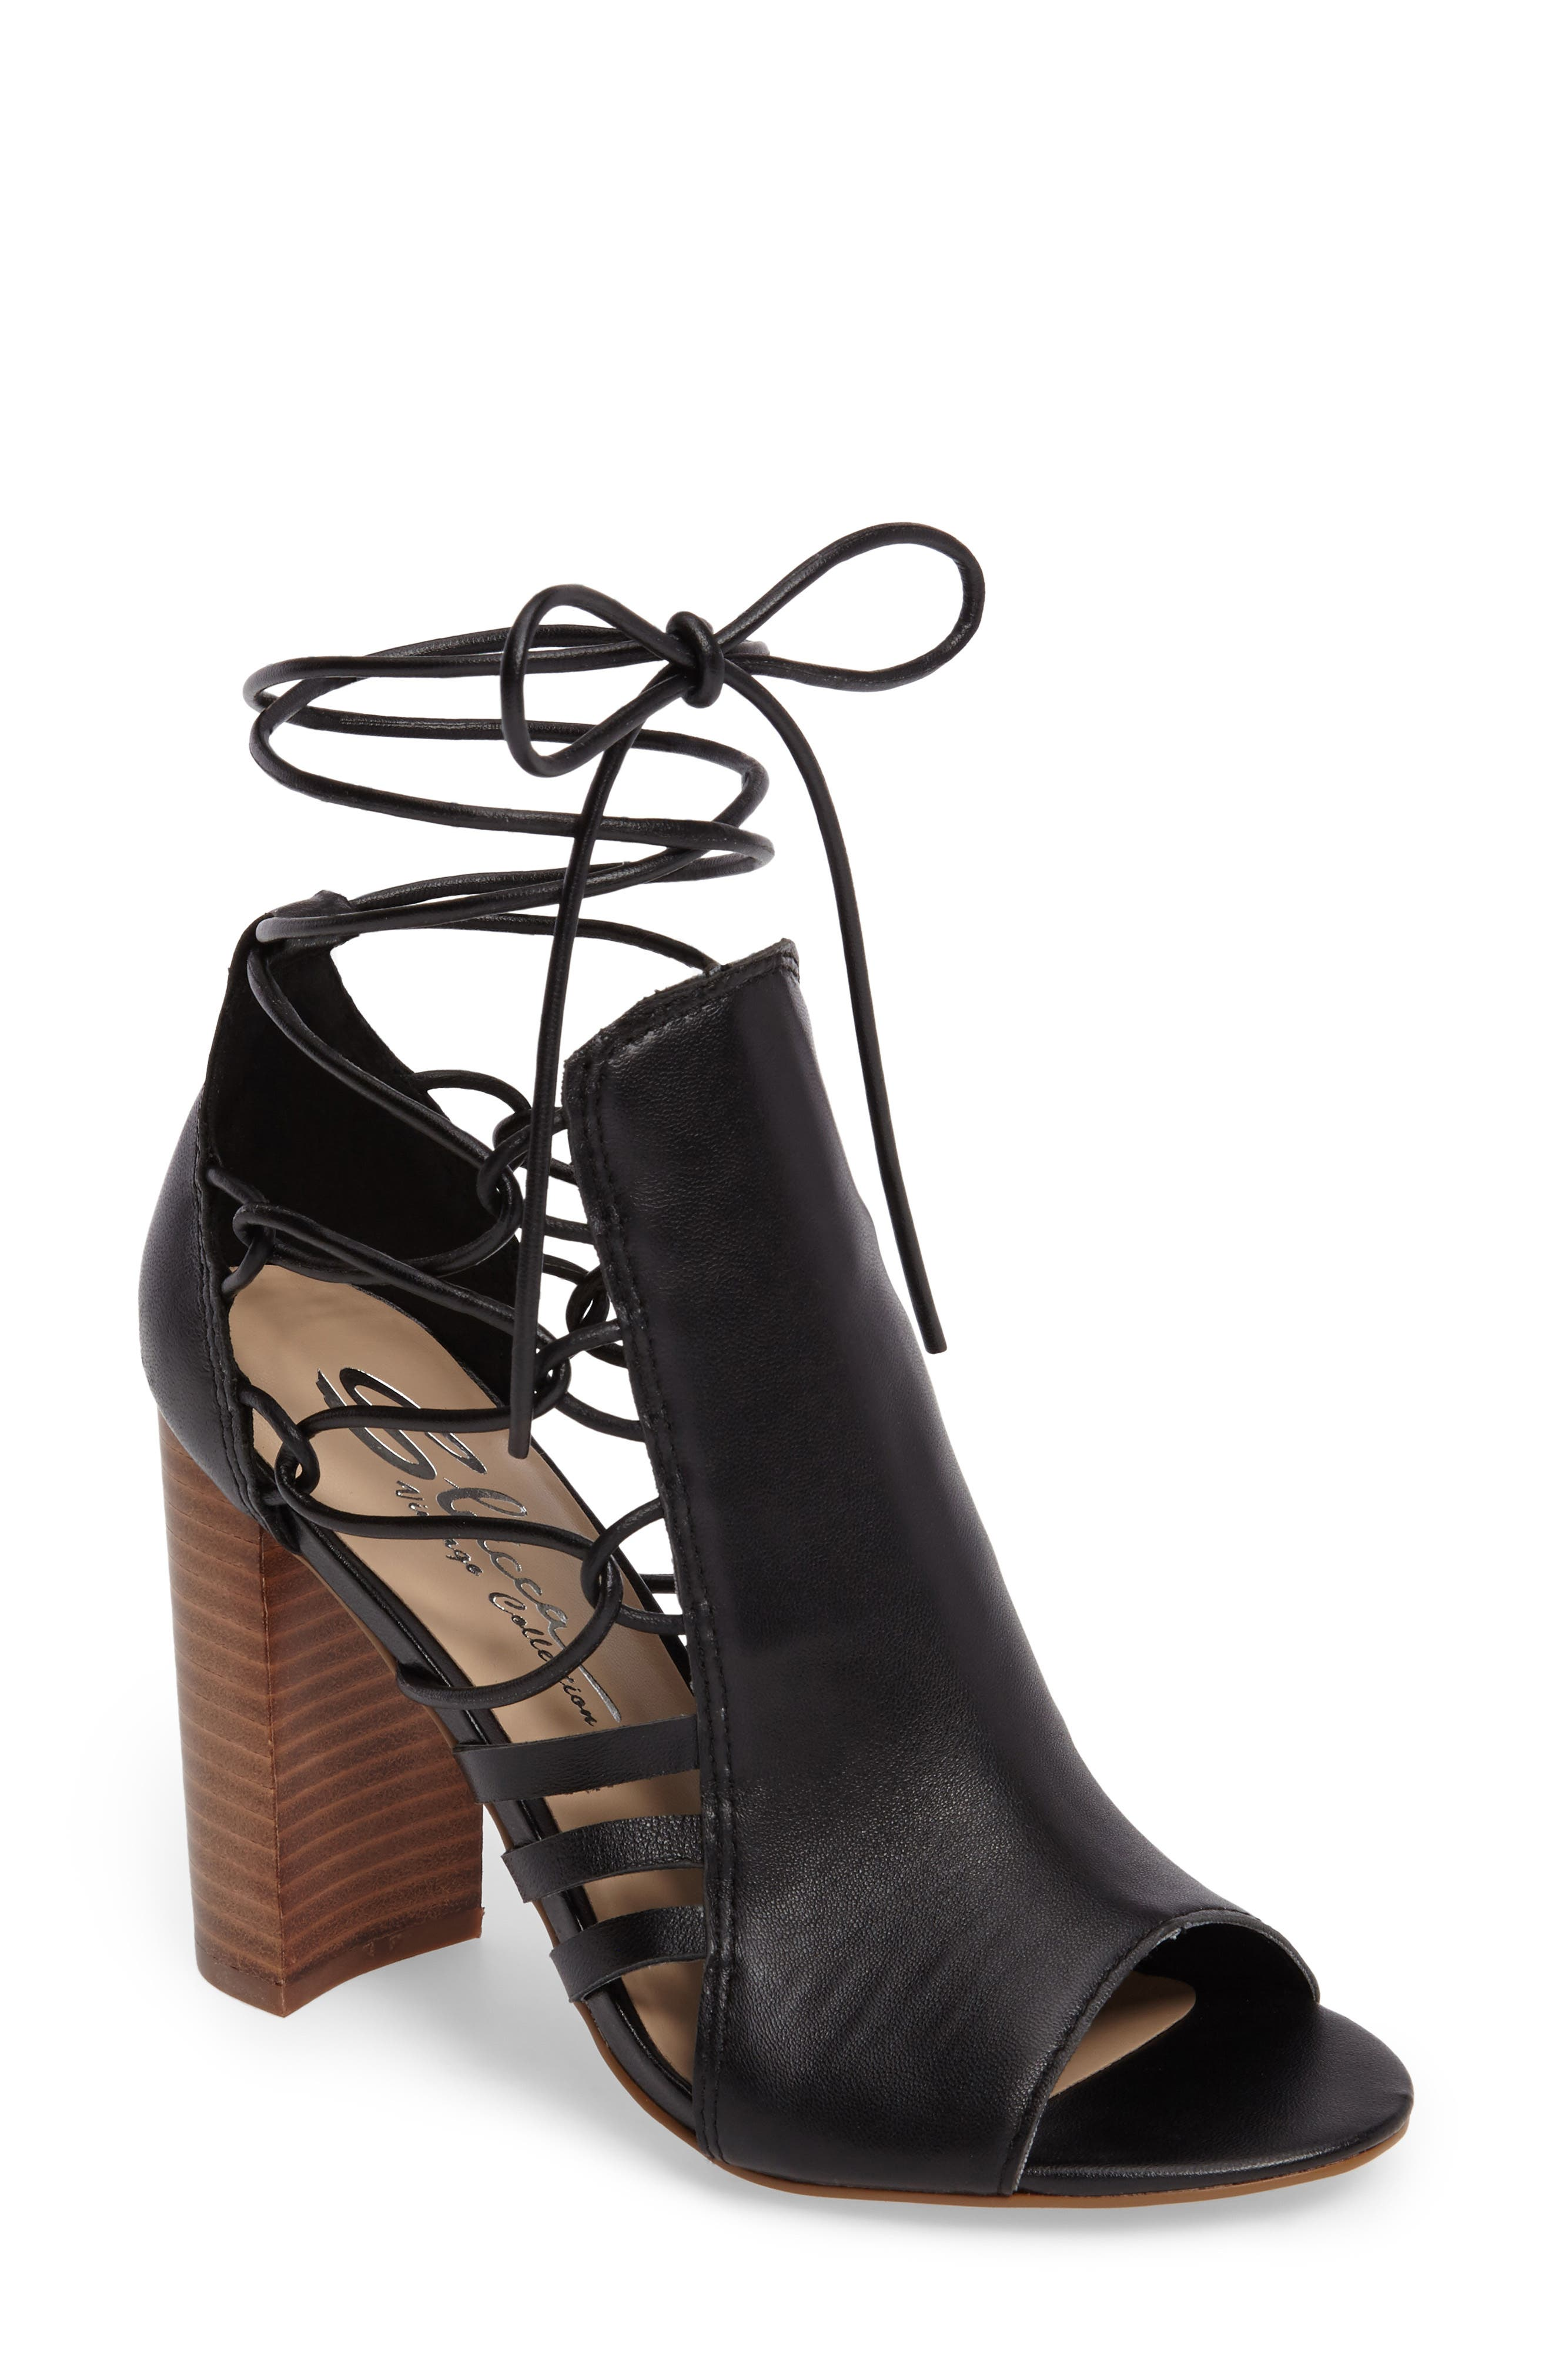 Alternate Image 1 Selected - Sbicca Adette Ankle Tie Sandal (Women)